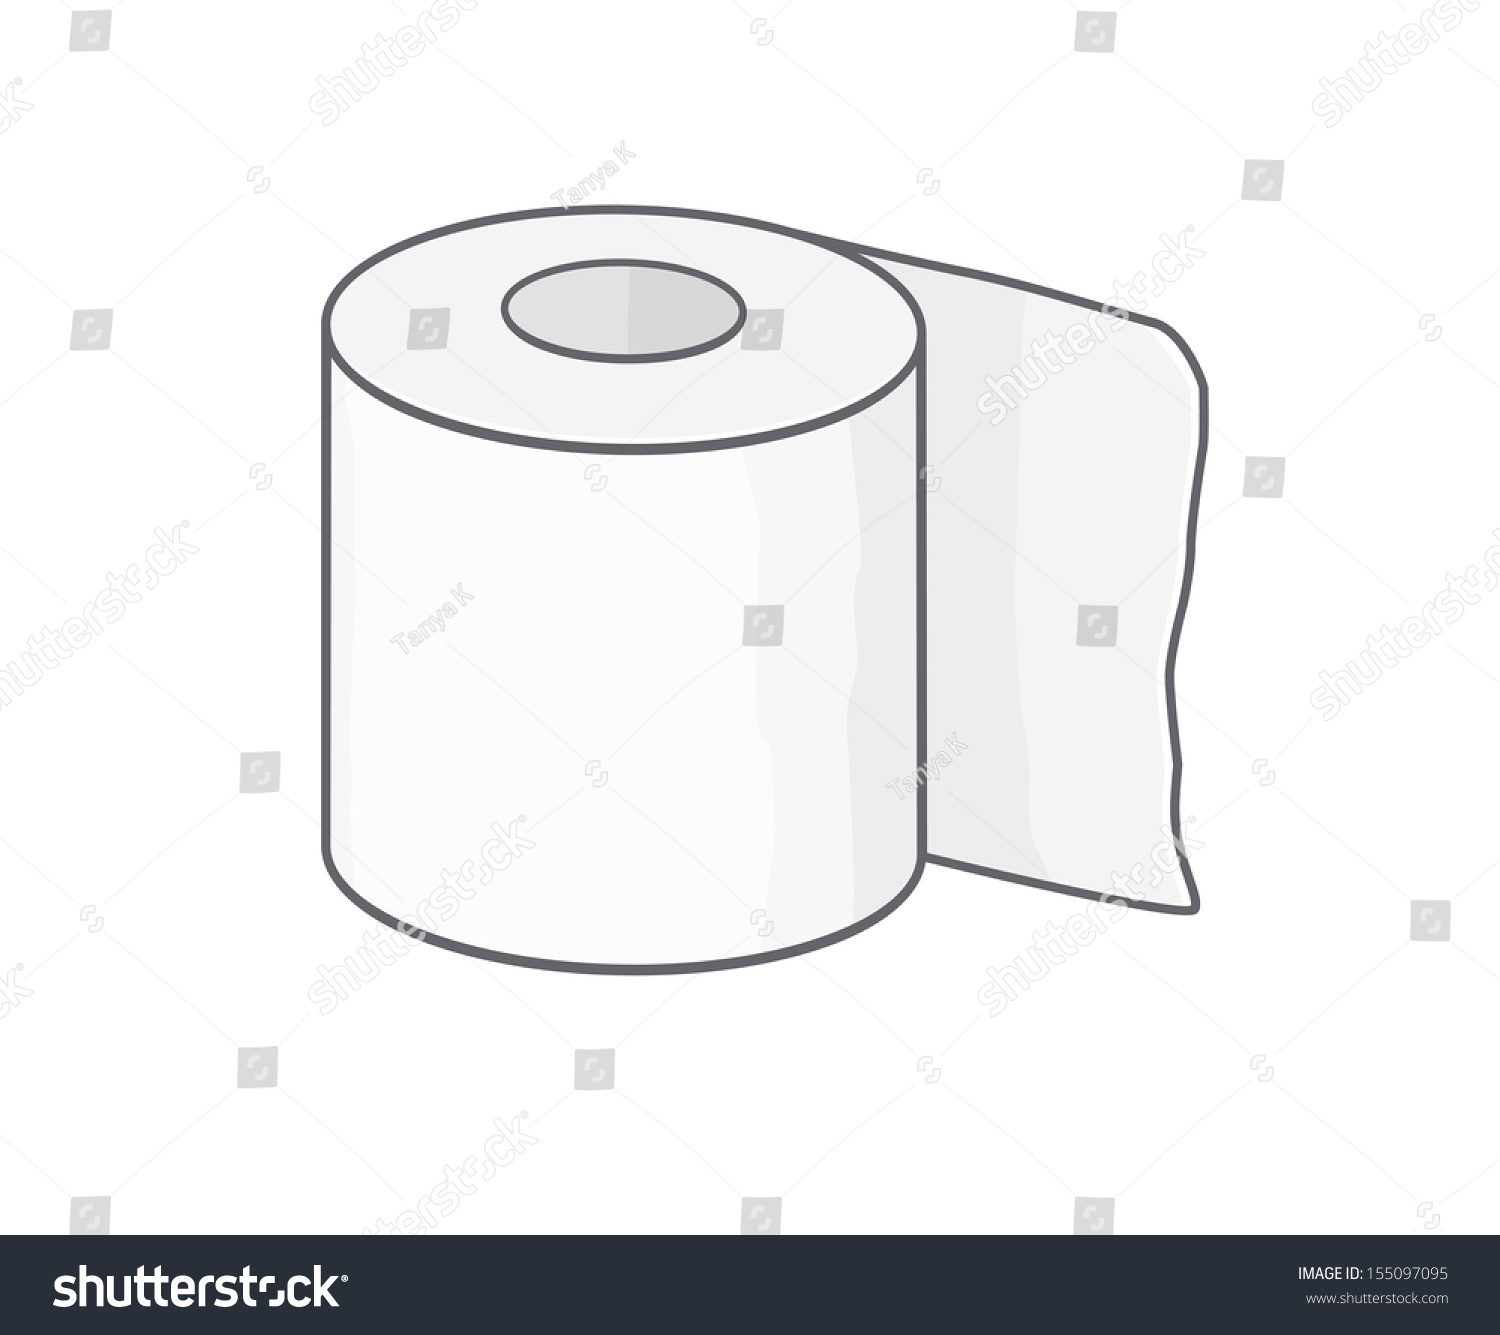 Toilet Paper Stock Vector Illustration 155097095